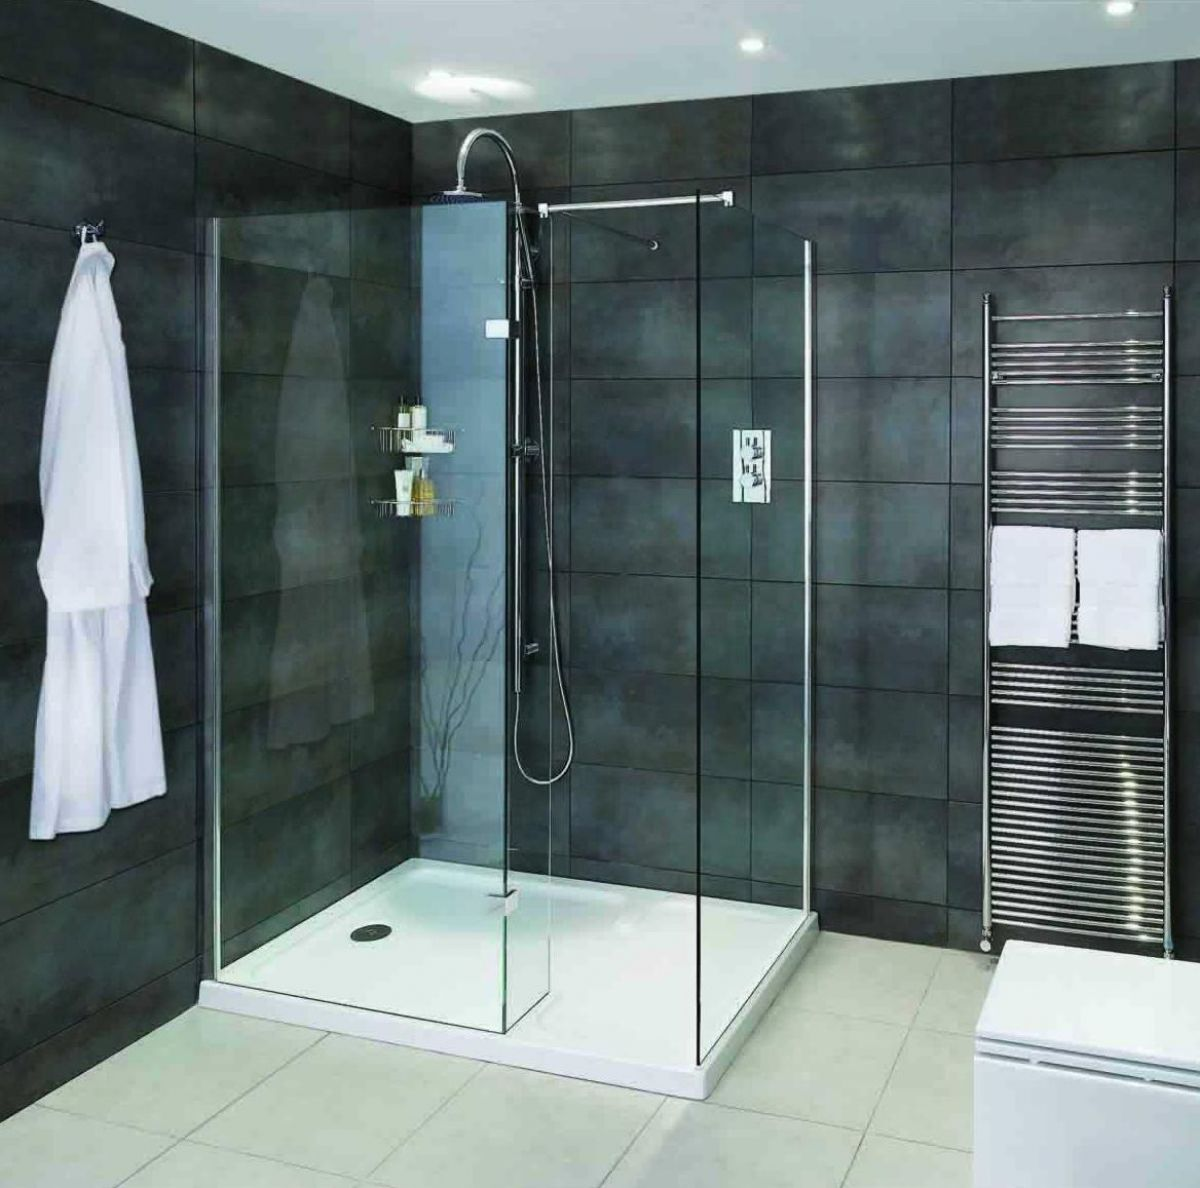 Aqata spectra walk in shower enclosure with hinged panel for Walk in shower plans and specs